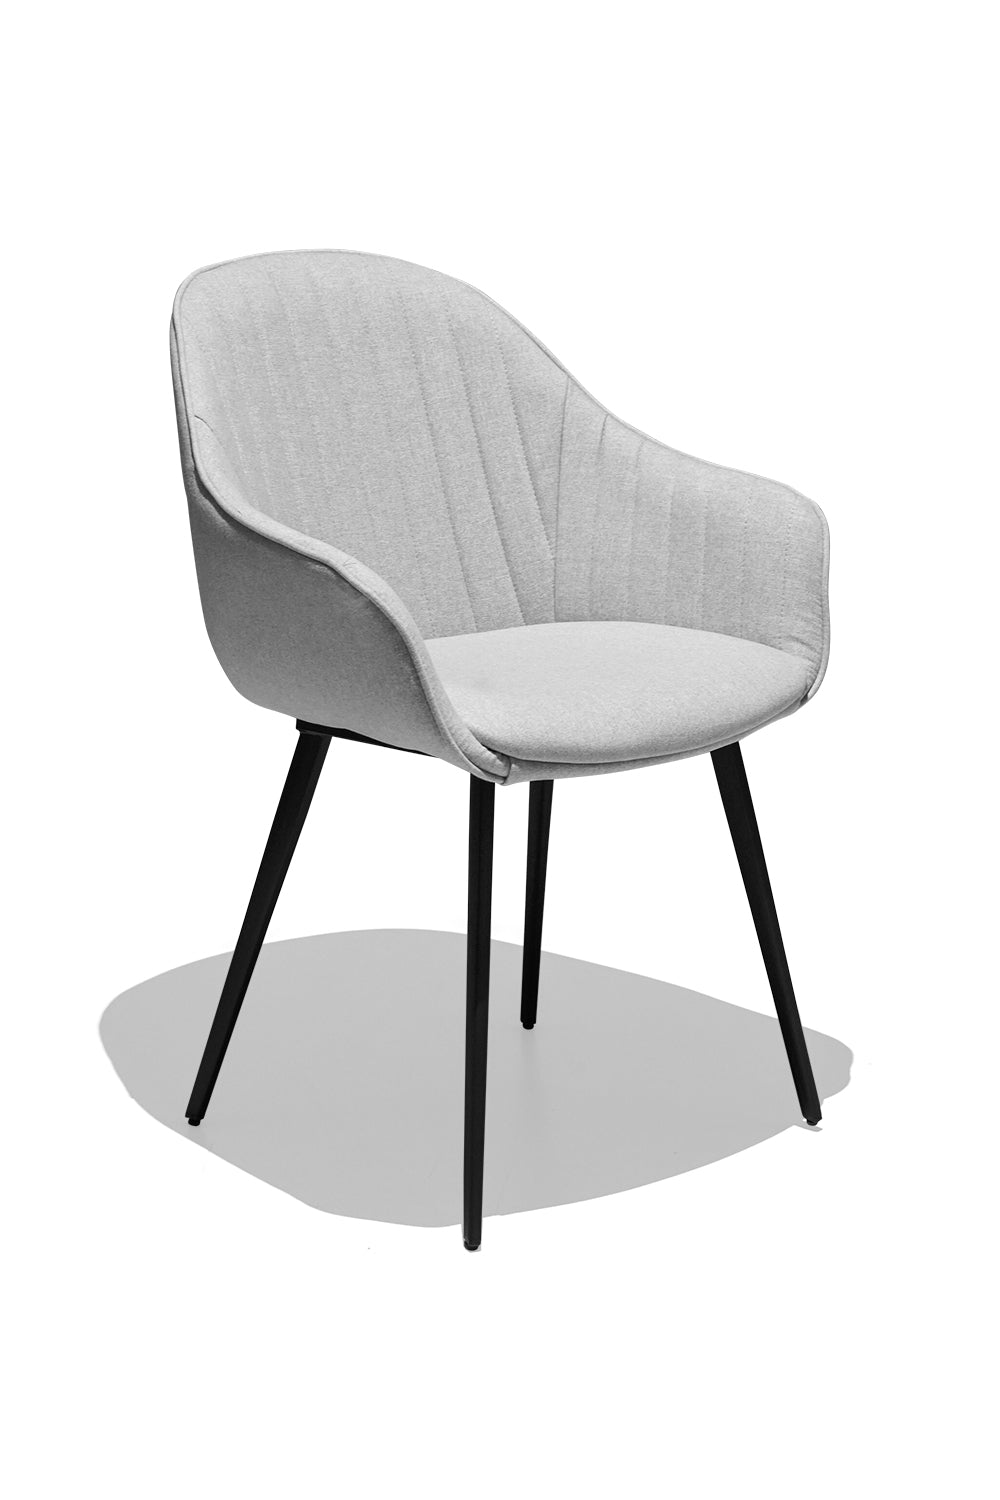 BALMORAL dining chair